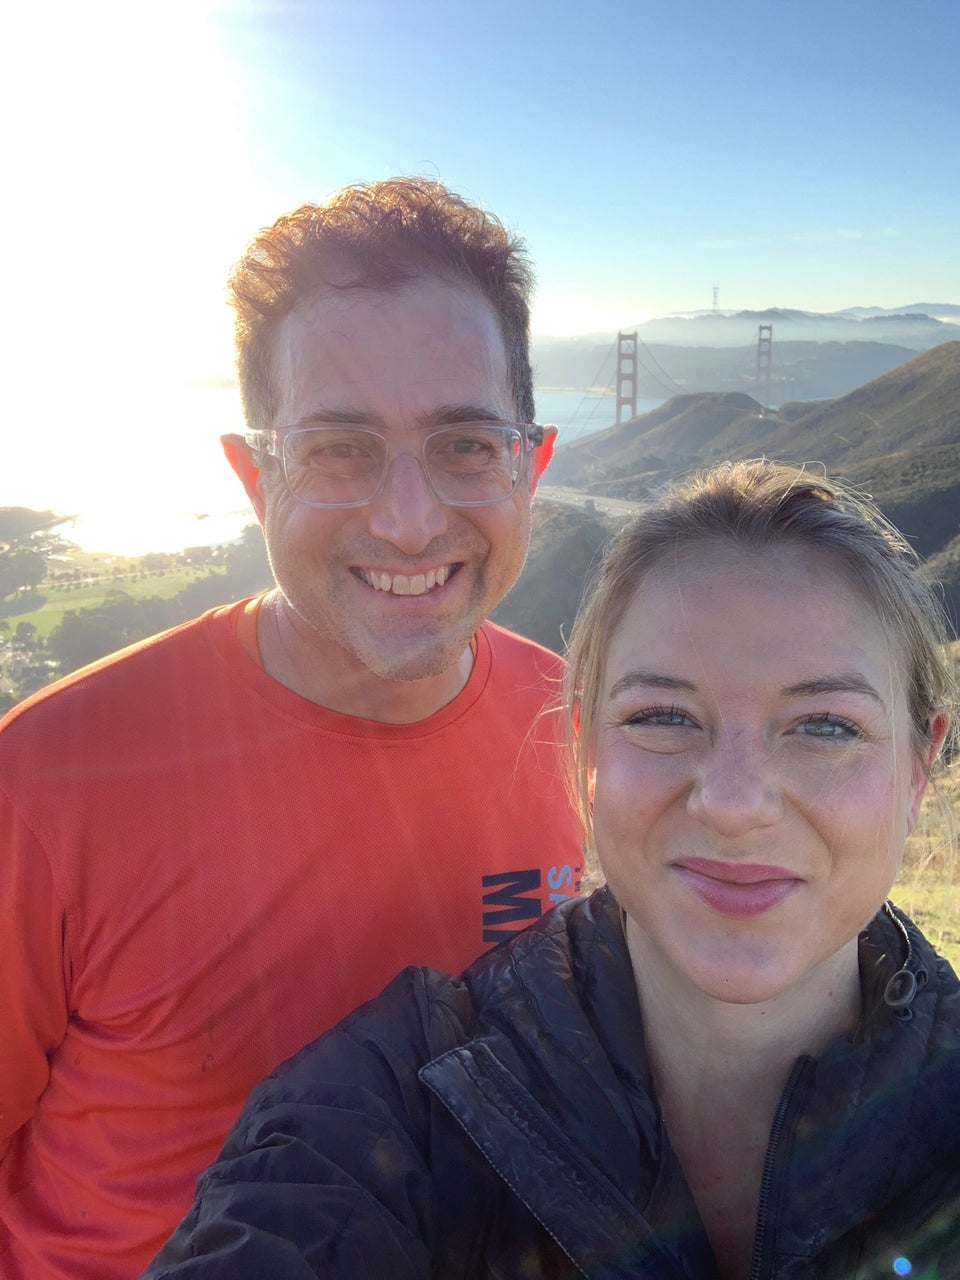 Emily taking a selfie of herself and Tantek with bright sun behind them, and the Golden Gate bridge towers poking above the Marin Headlands.